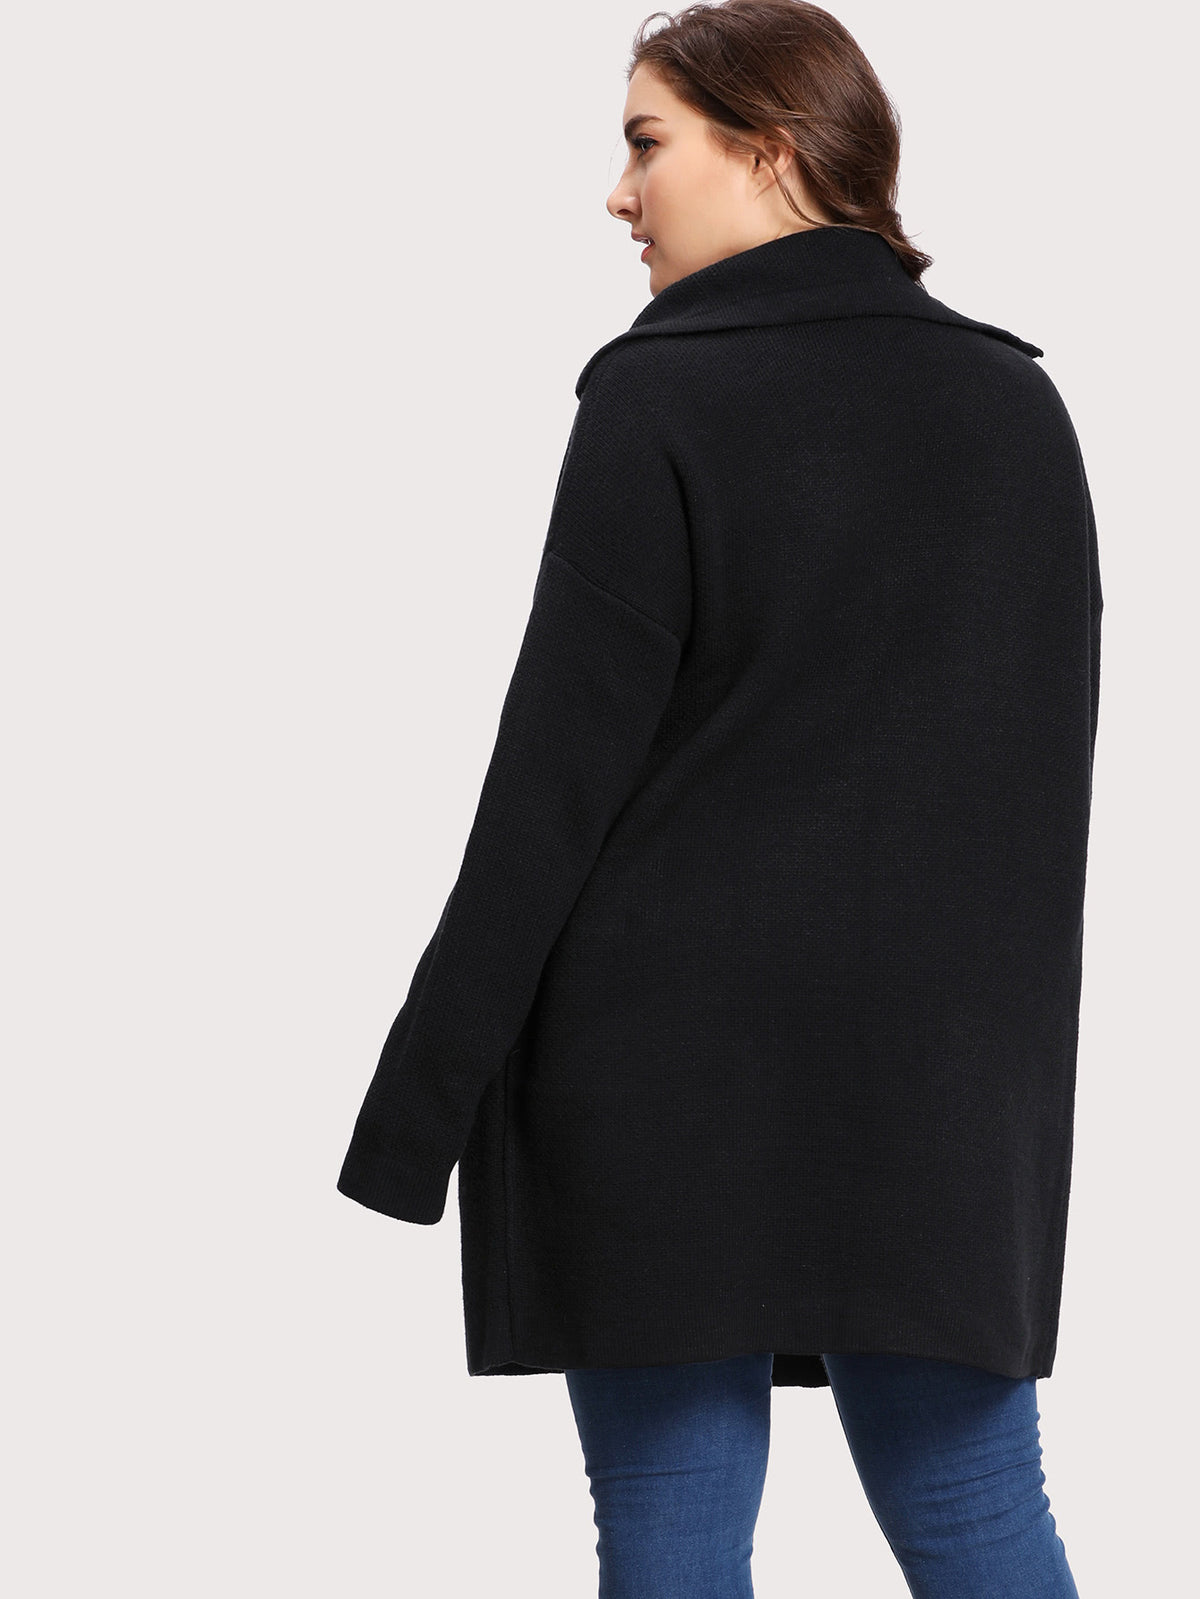 Notch Collar Drop Shoulder Jumper